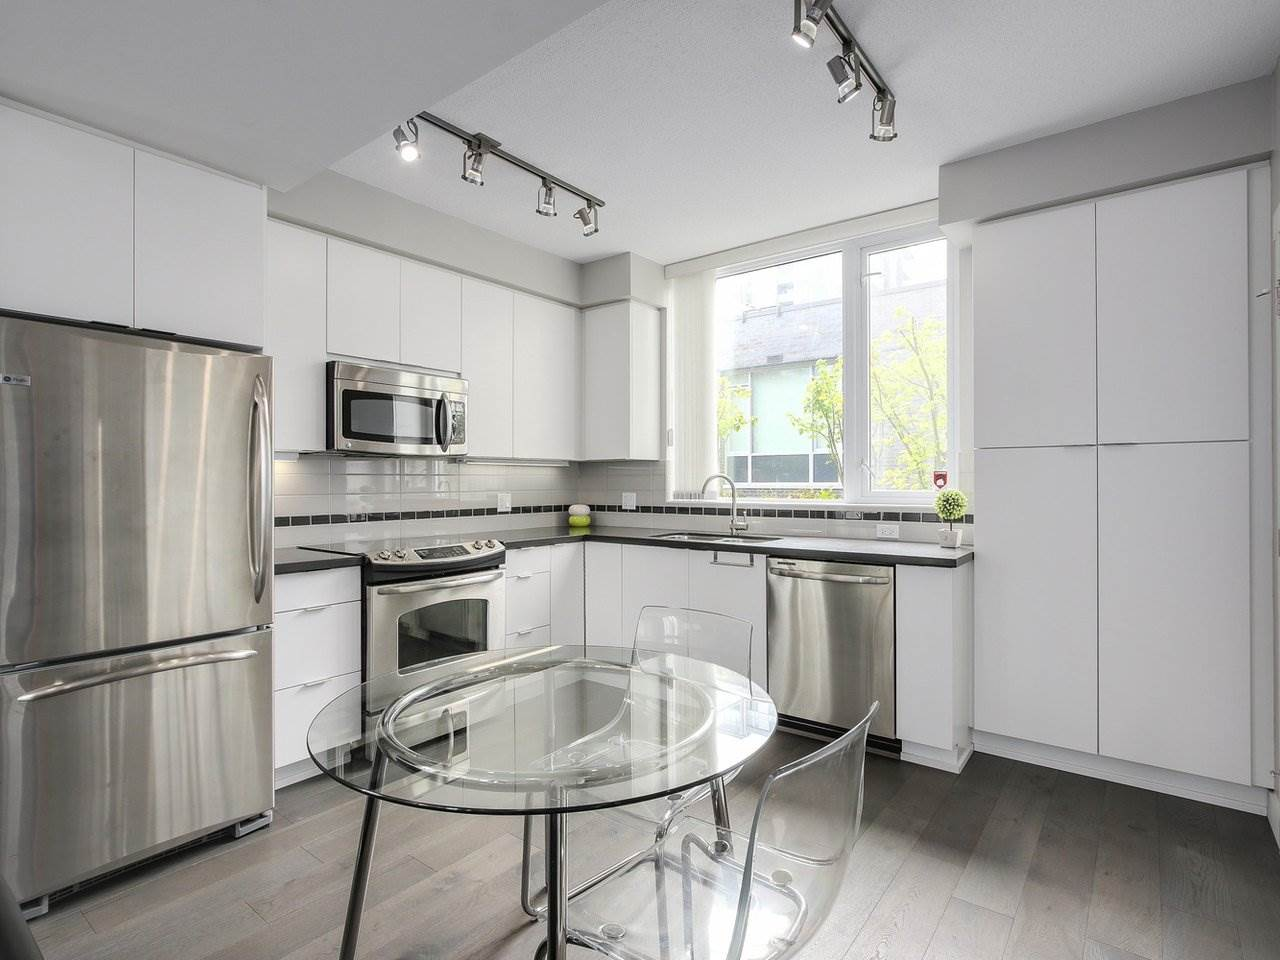 "Photo 3: 112 9025 HIGHLAND Court in Burnaby: Simon Fraser Univer. Townhouse for sale in ""HIGHLAND HOUSE"" (Burnaby North)  : MLS® # R2163984"